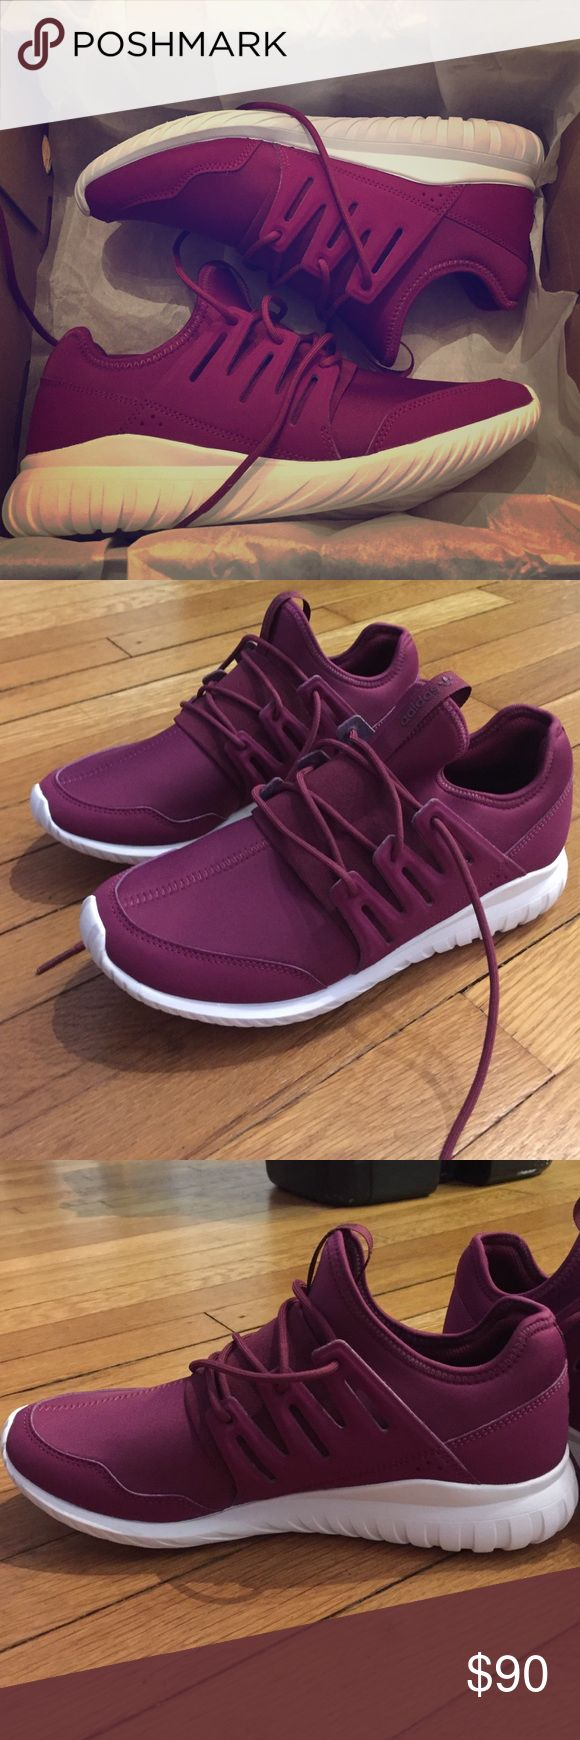 Adidas Tubular Radial Maroon Purple Burgundy BNIB! I did wear them around the house for a few hours and decided they're way too big for me! These are sold out in this color everywhere! Very lightweight, roomy, and comfortable. Look cute at the gym with this gorgeous maroon color  Size 7, could even fit 7.5 Adidas Shoes Athletic Shoes